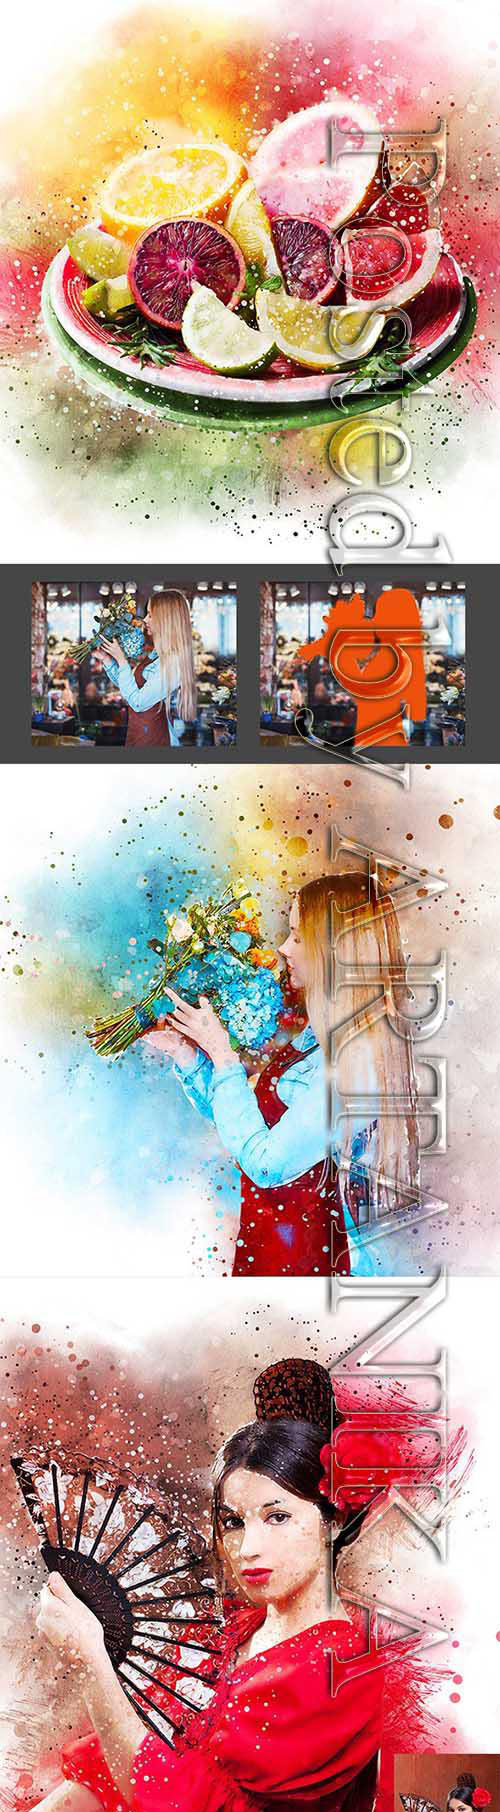 Mixed Art Painting Photoshop Action 23646288